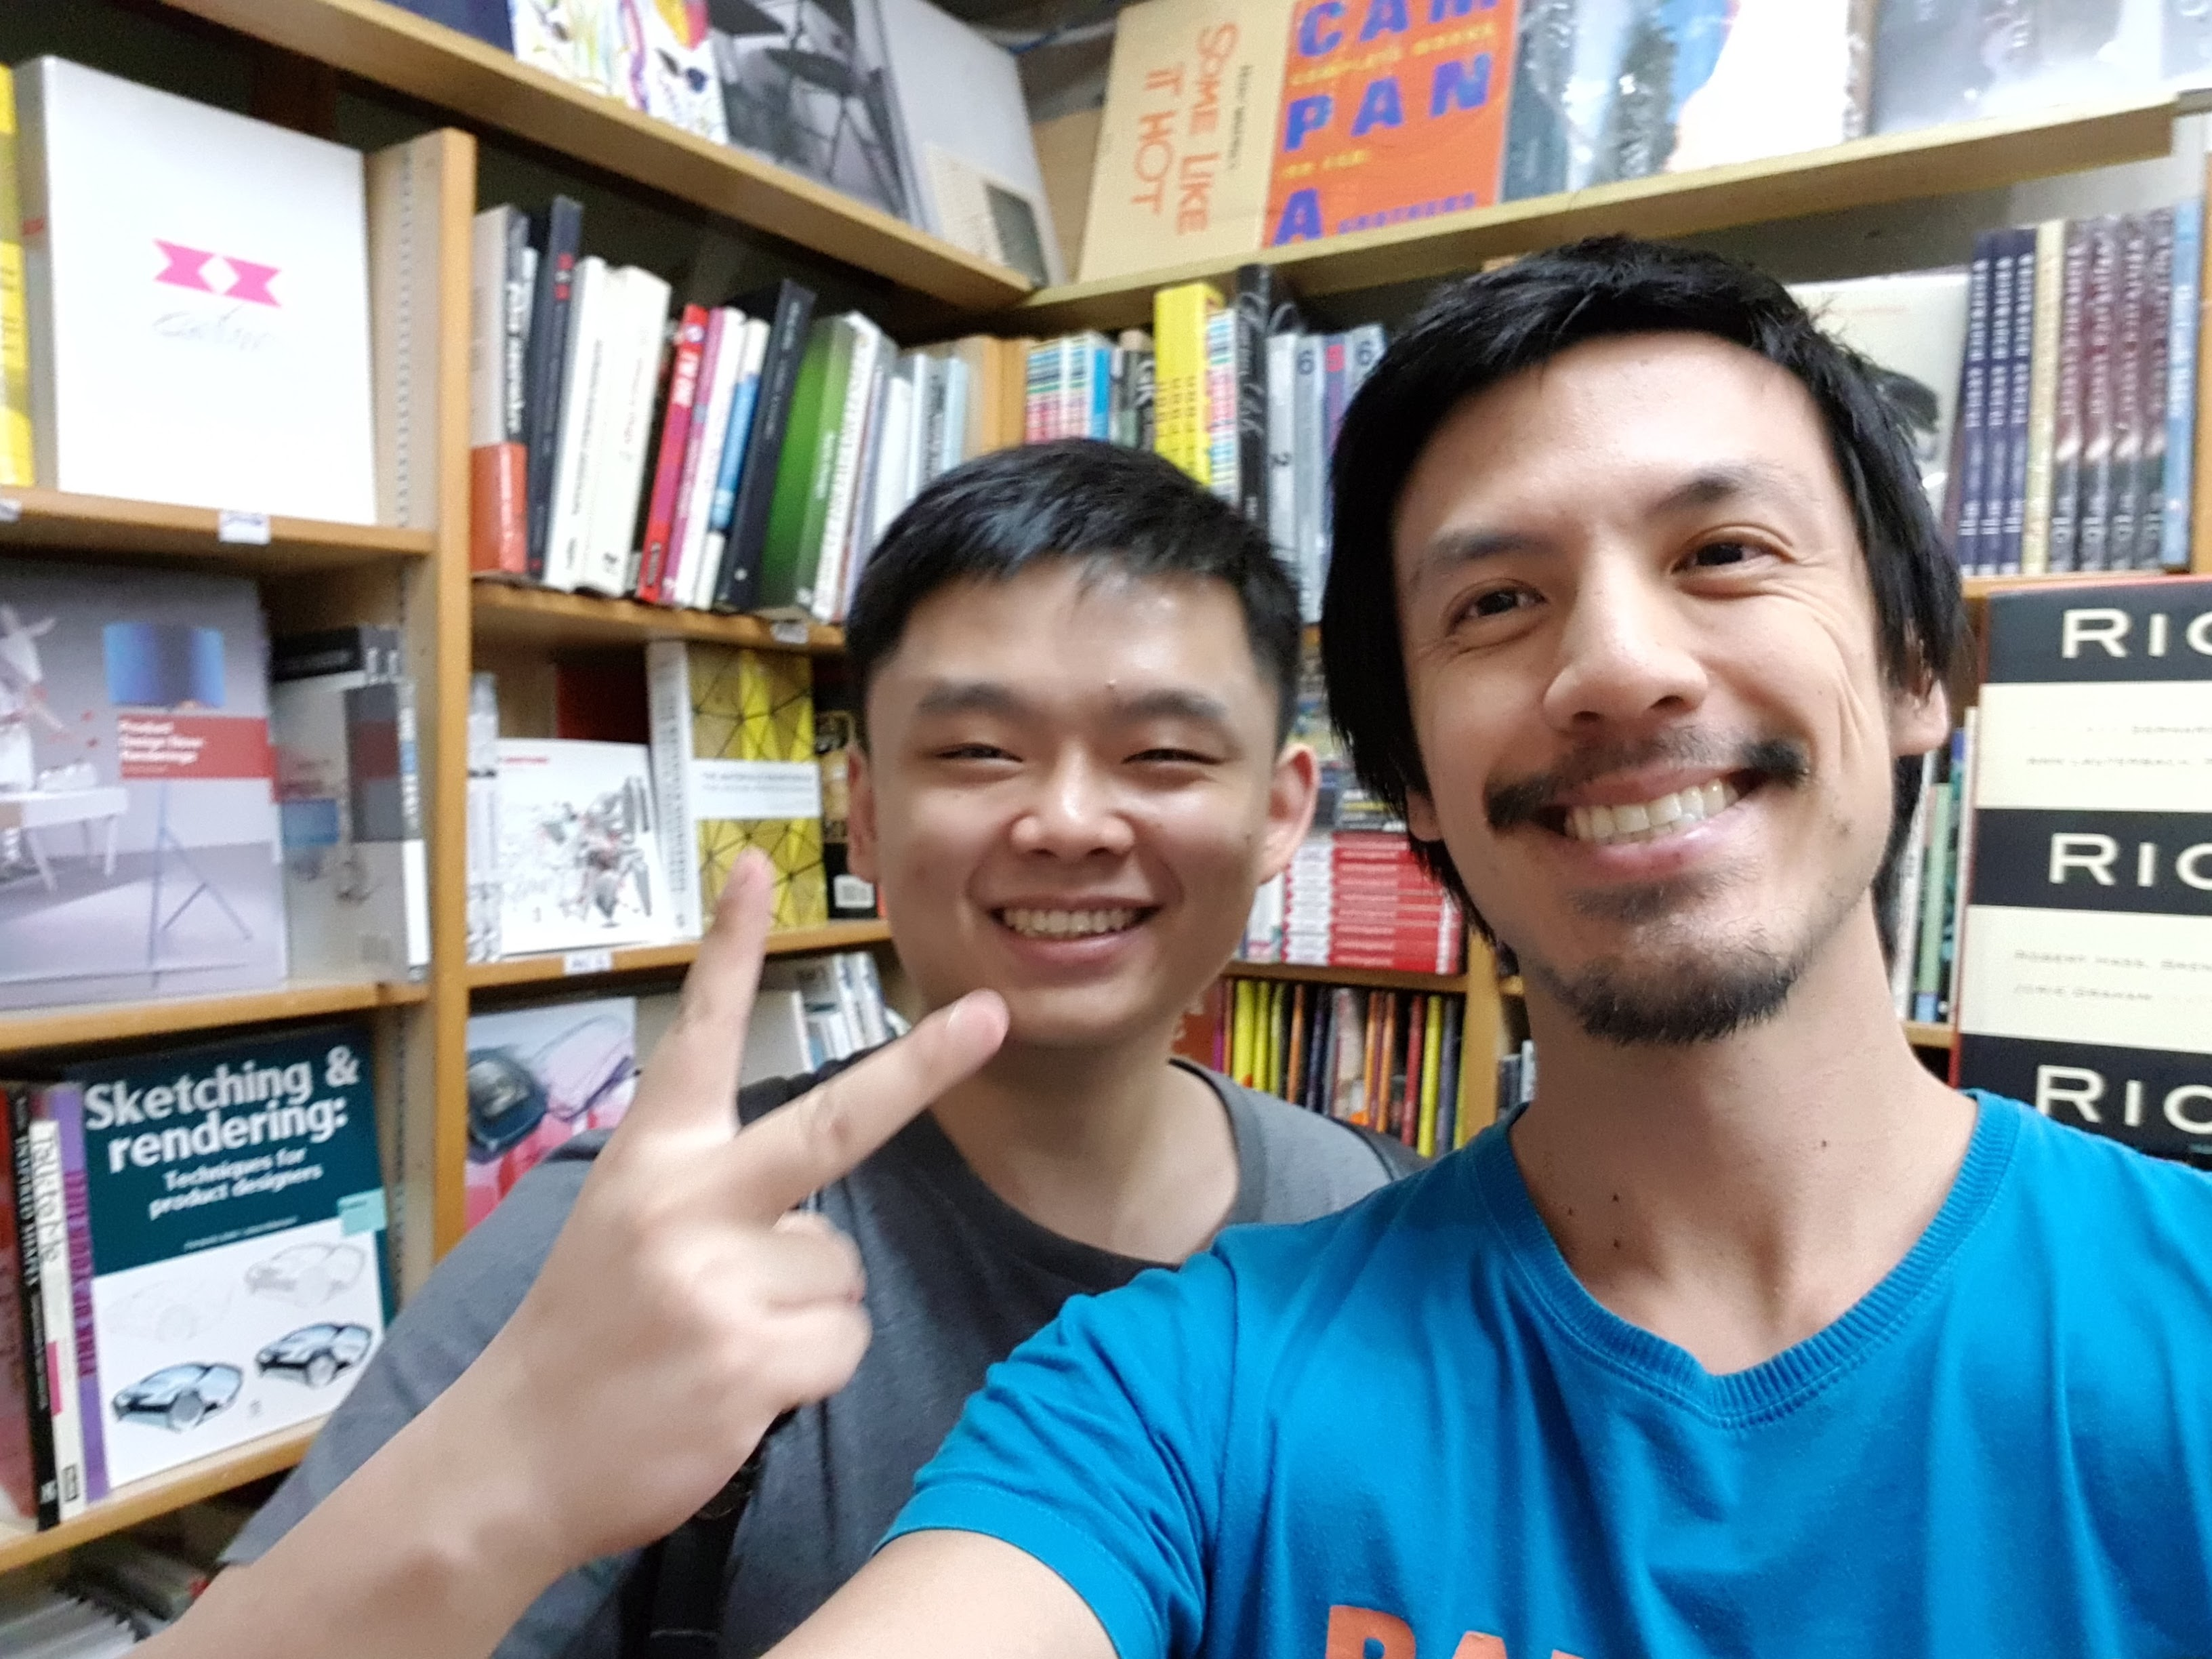 At Basheer Graphics bookstore (Singapore) with John|VIP Sketch Like the Pros member